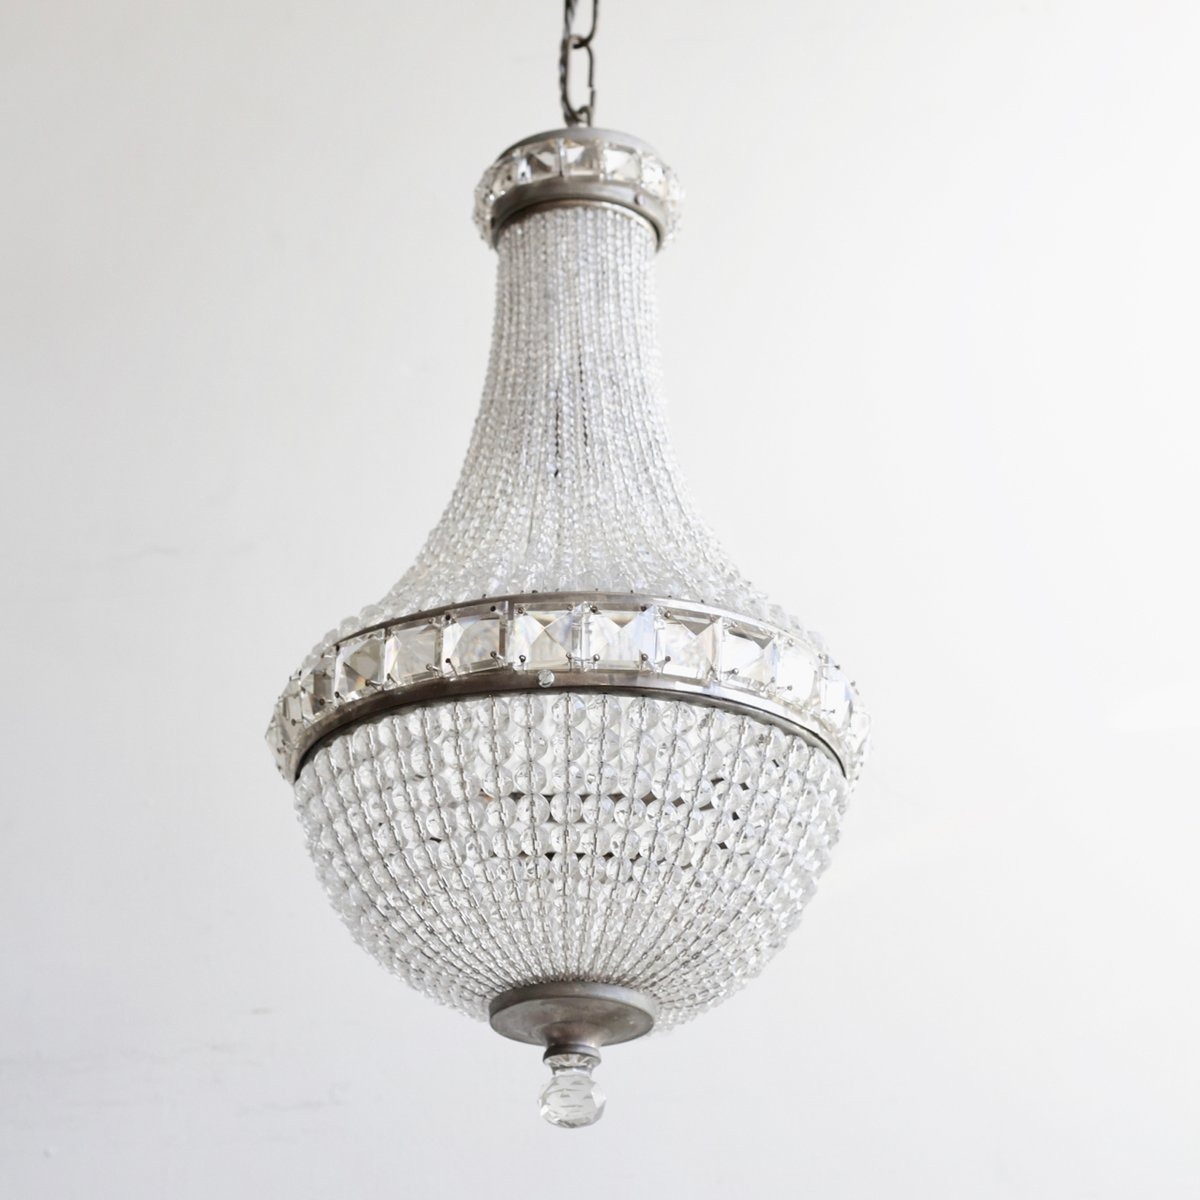 Czech Crystal Balloon Chandelier 1930s For Sale At Pamono